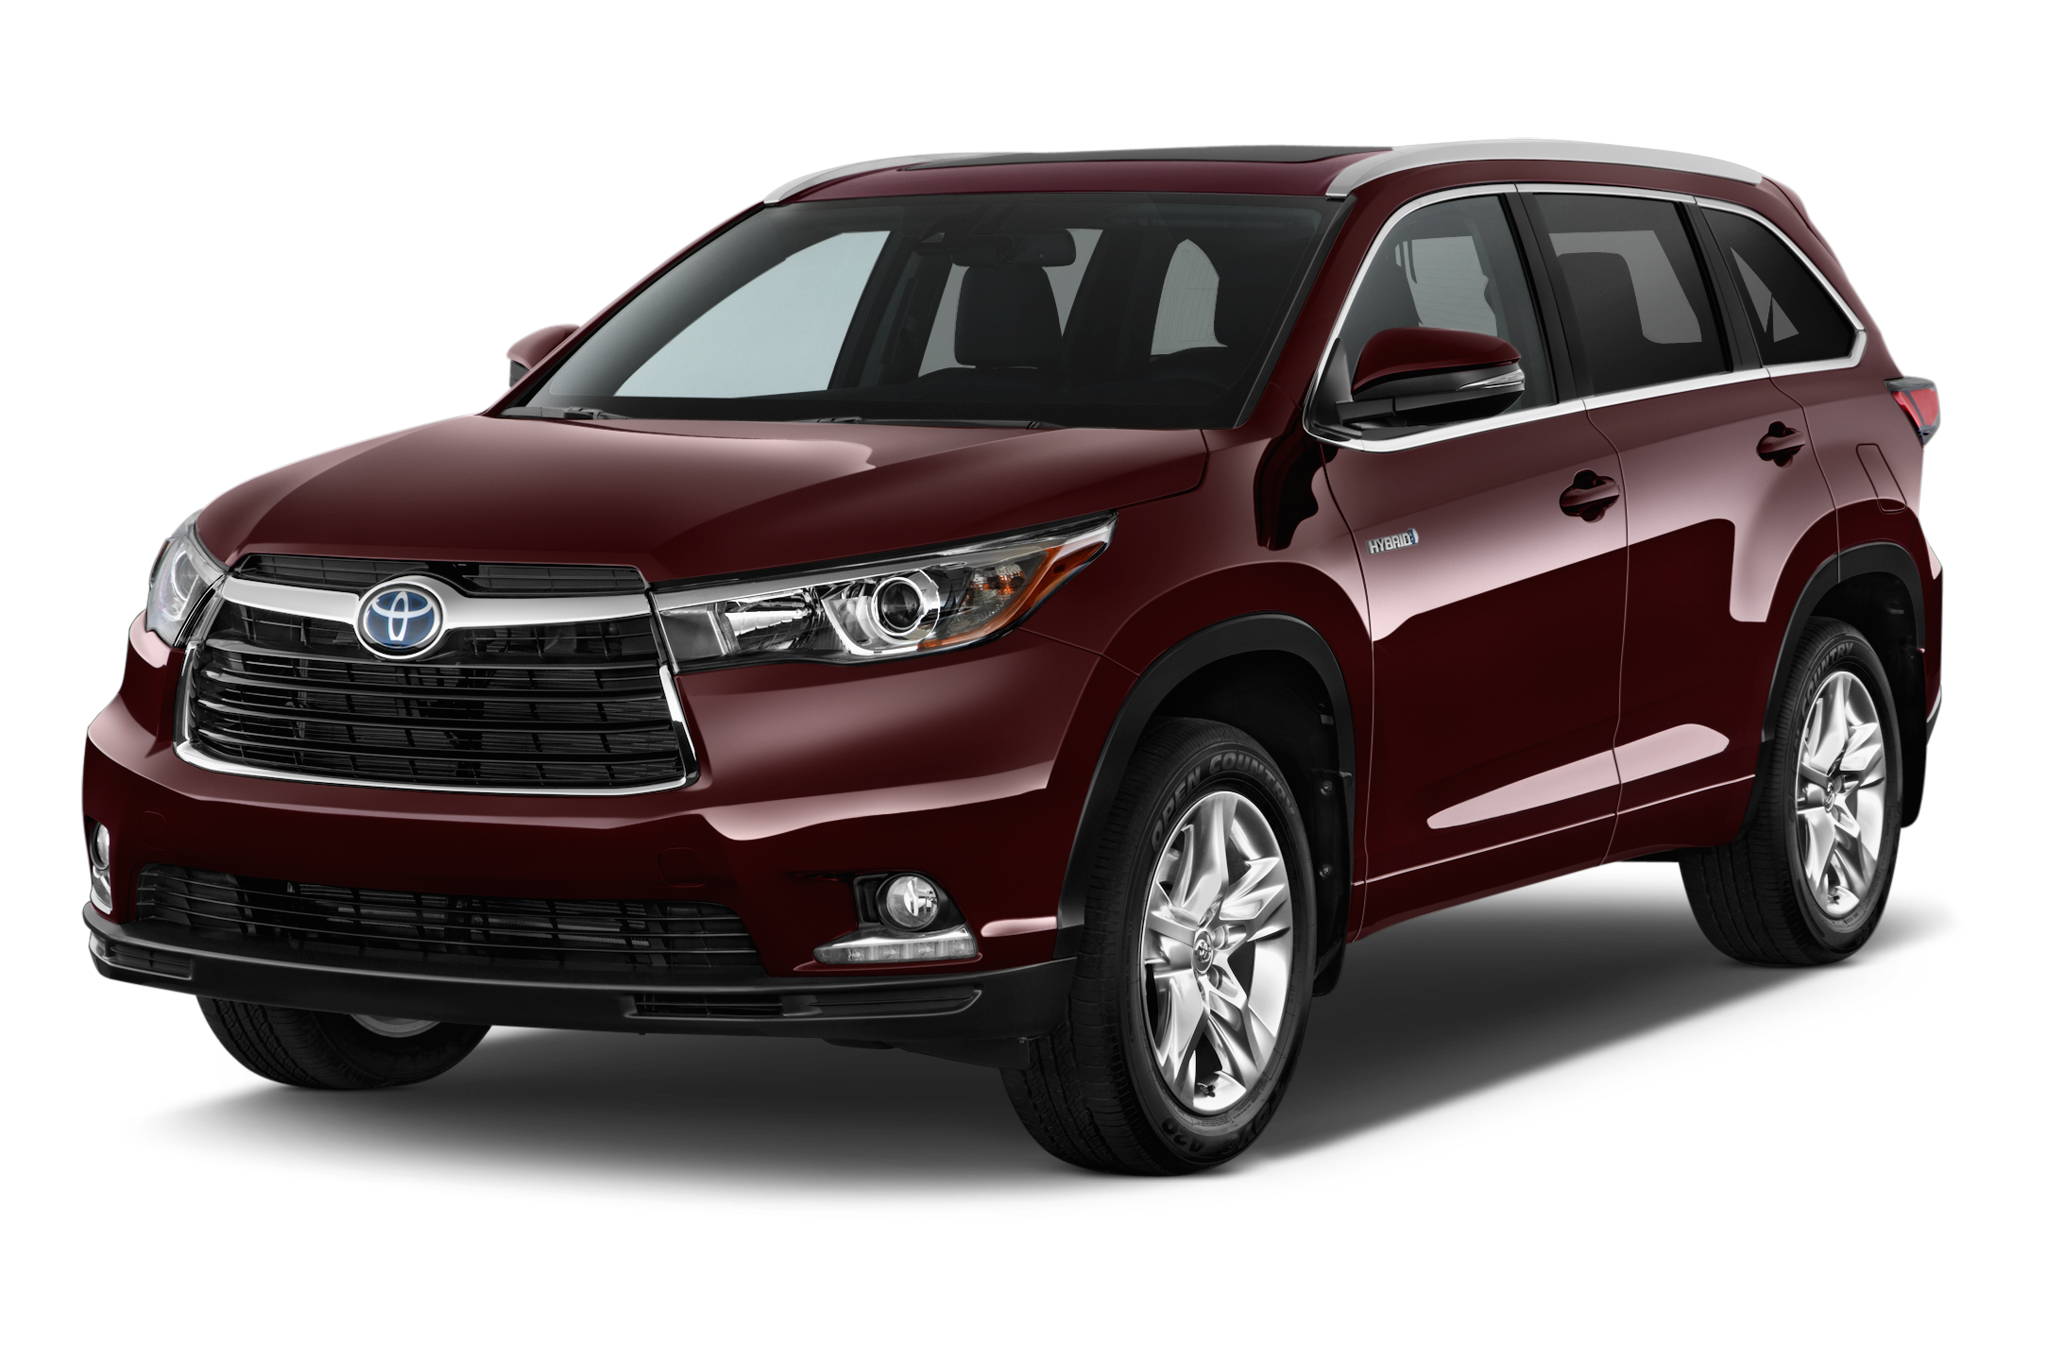 2016 toyota highlander limited platinum hybrid 4x4 reviews msn autos. Black Bedroom Furniture Sets. Home Design Ideas